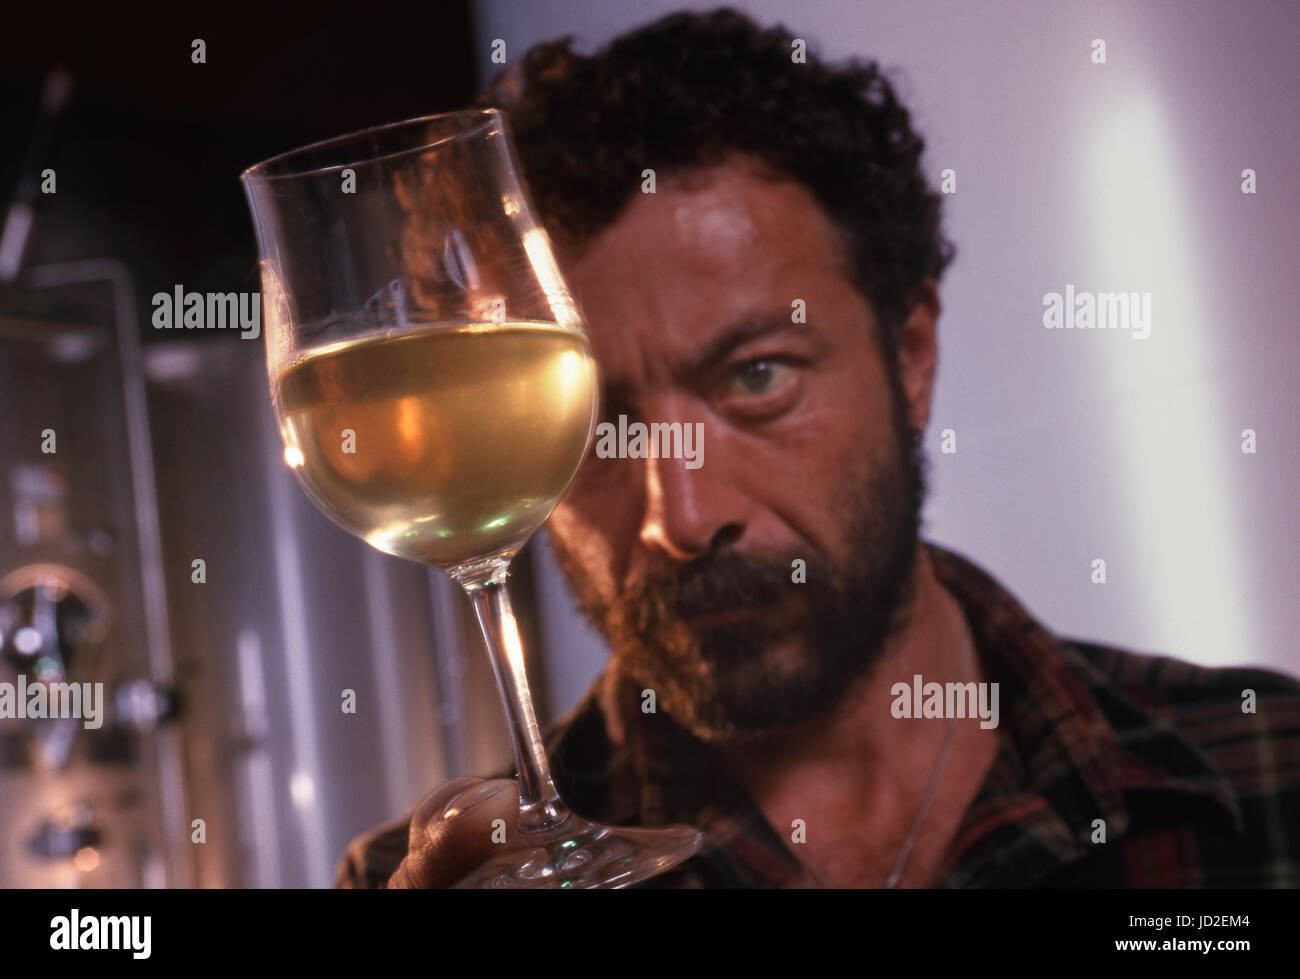 French Cellar worker examines a freshly drawn glass of Chardonnay dry white wine drawn from fermentation tanks in the modern u0027Le Closu0027 cellars facility of ...  sc 1 st  Alamy & French Cellar worker examines a freshly drawn glass of Chardonnay ...